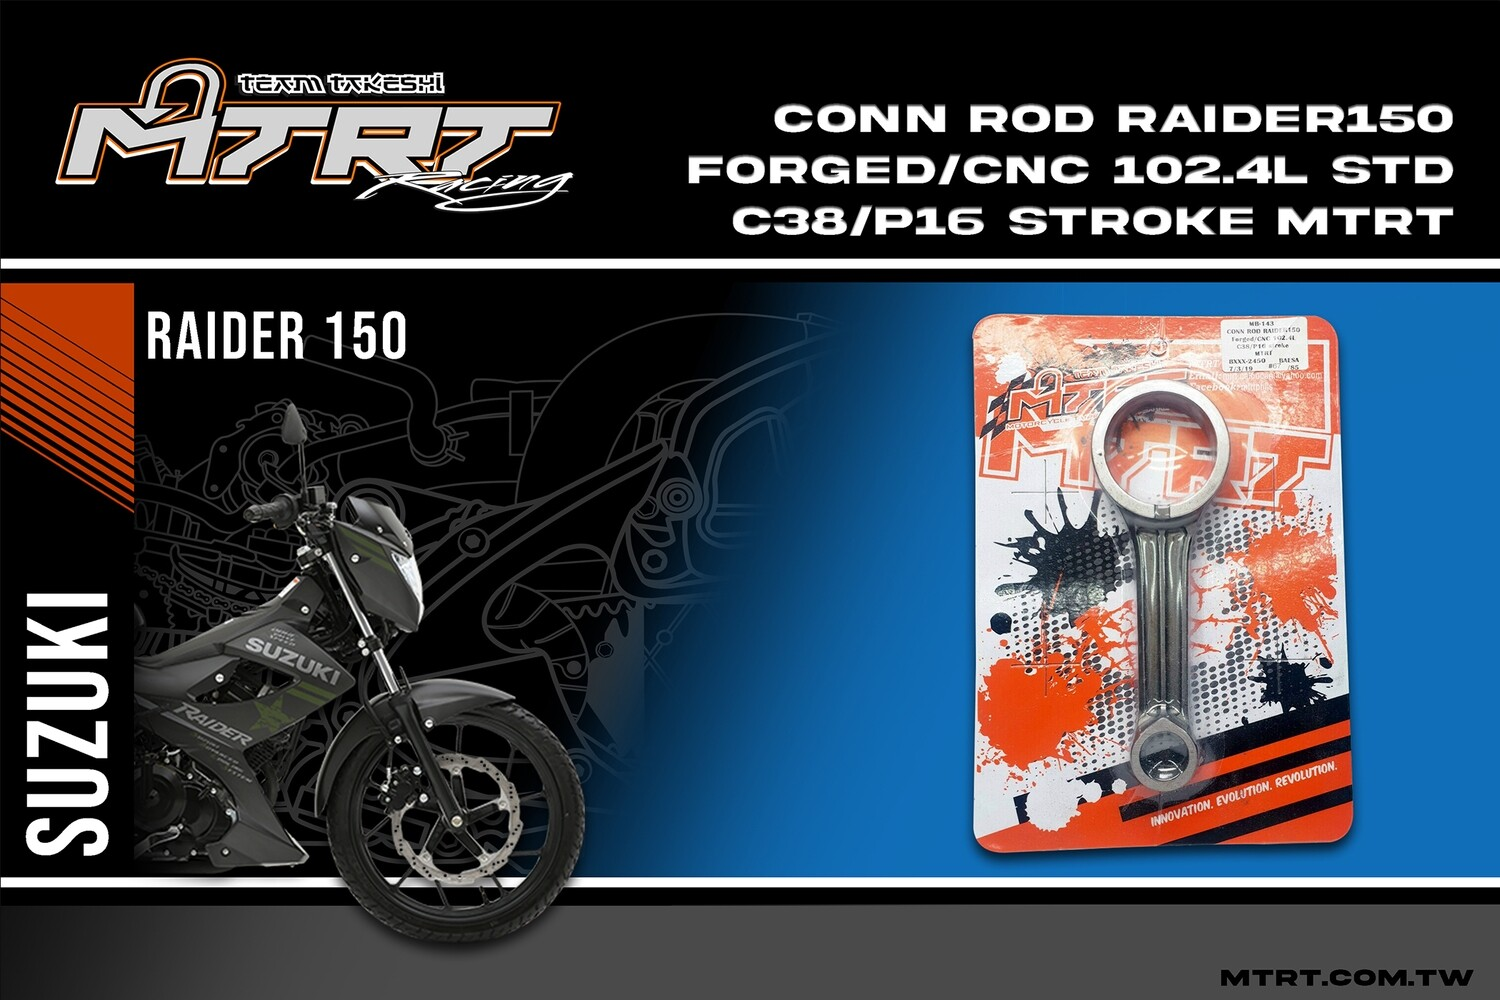 CONN ROD Forged/CNC102.4L C38/P16 stroke